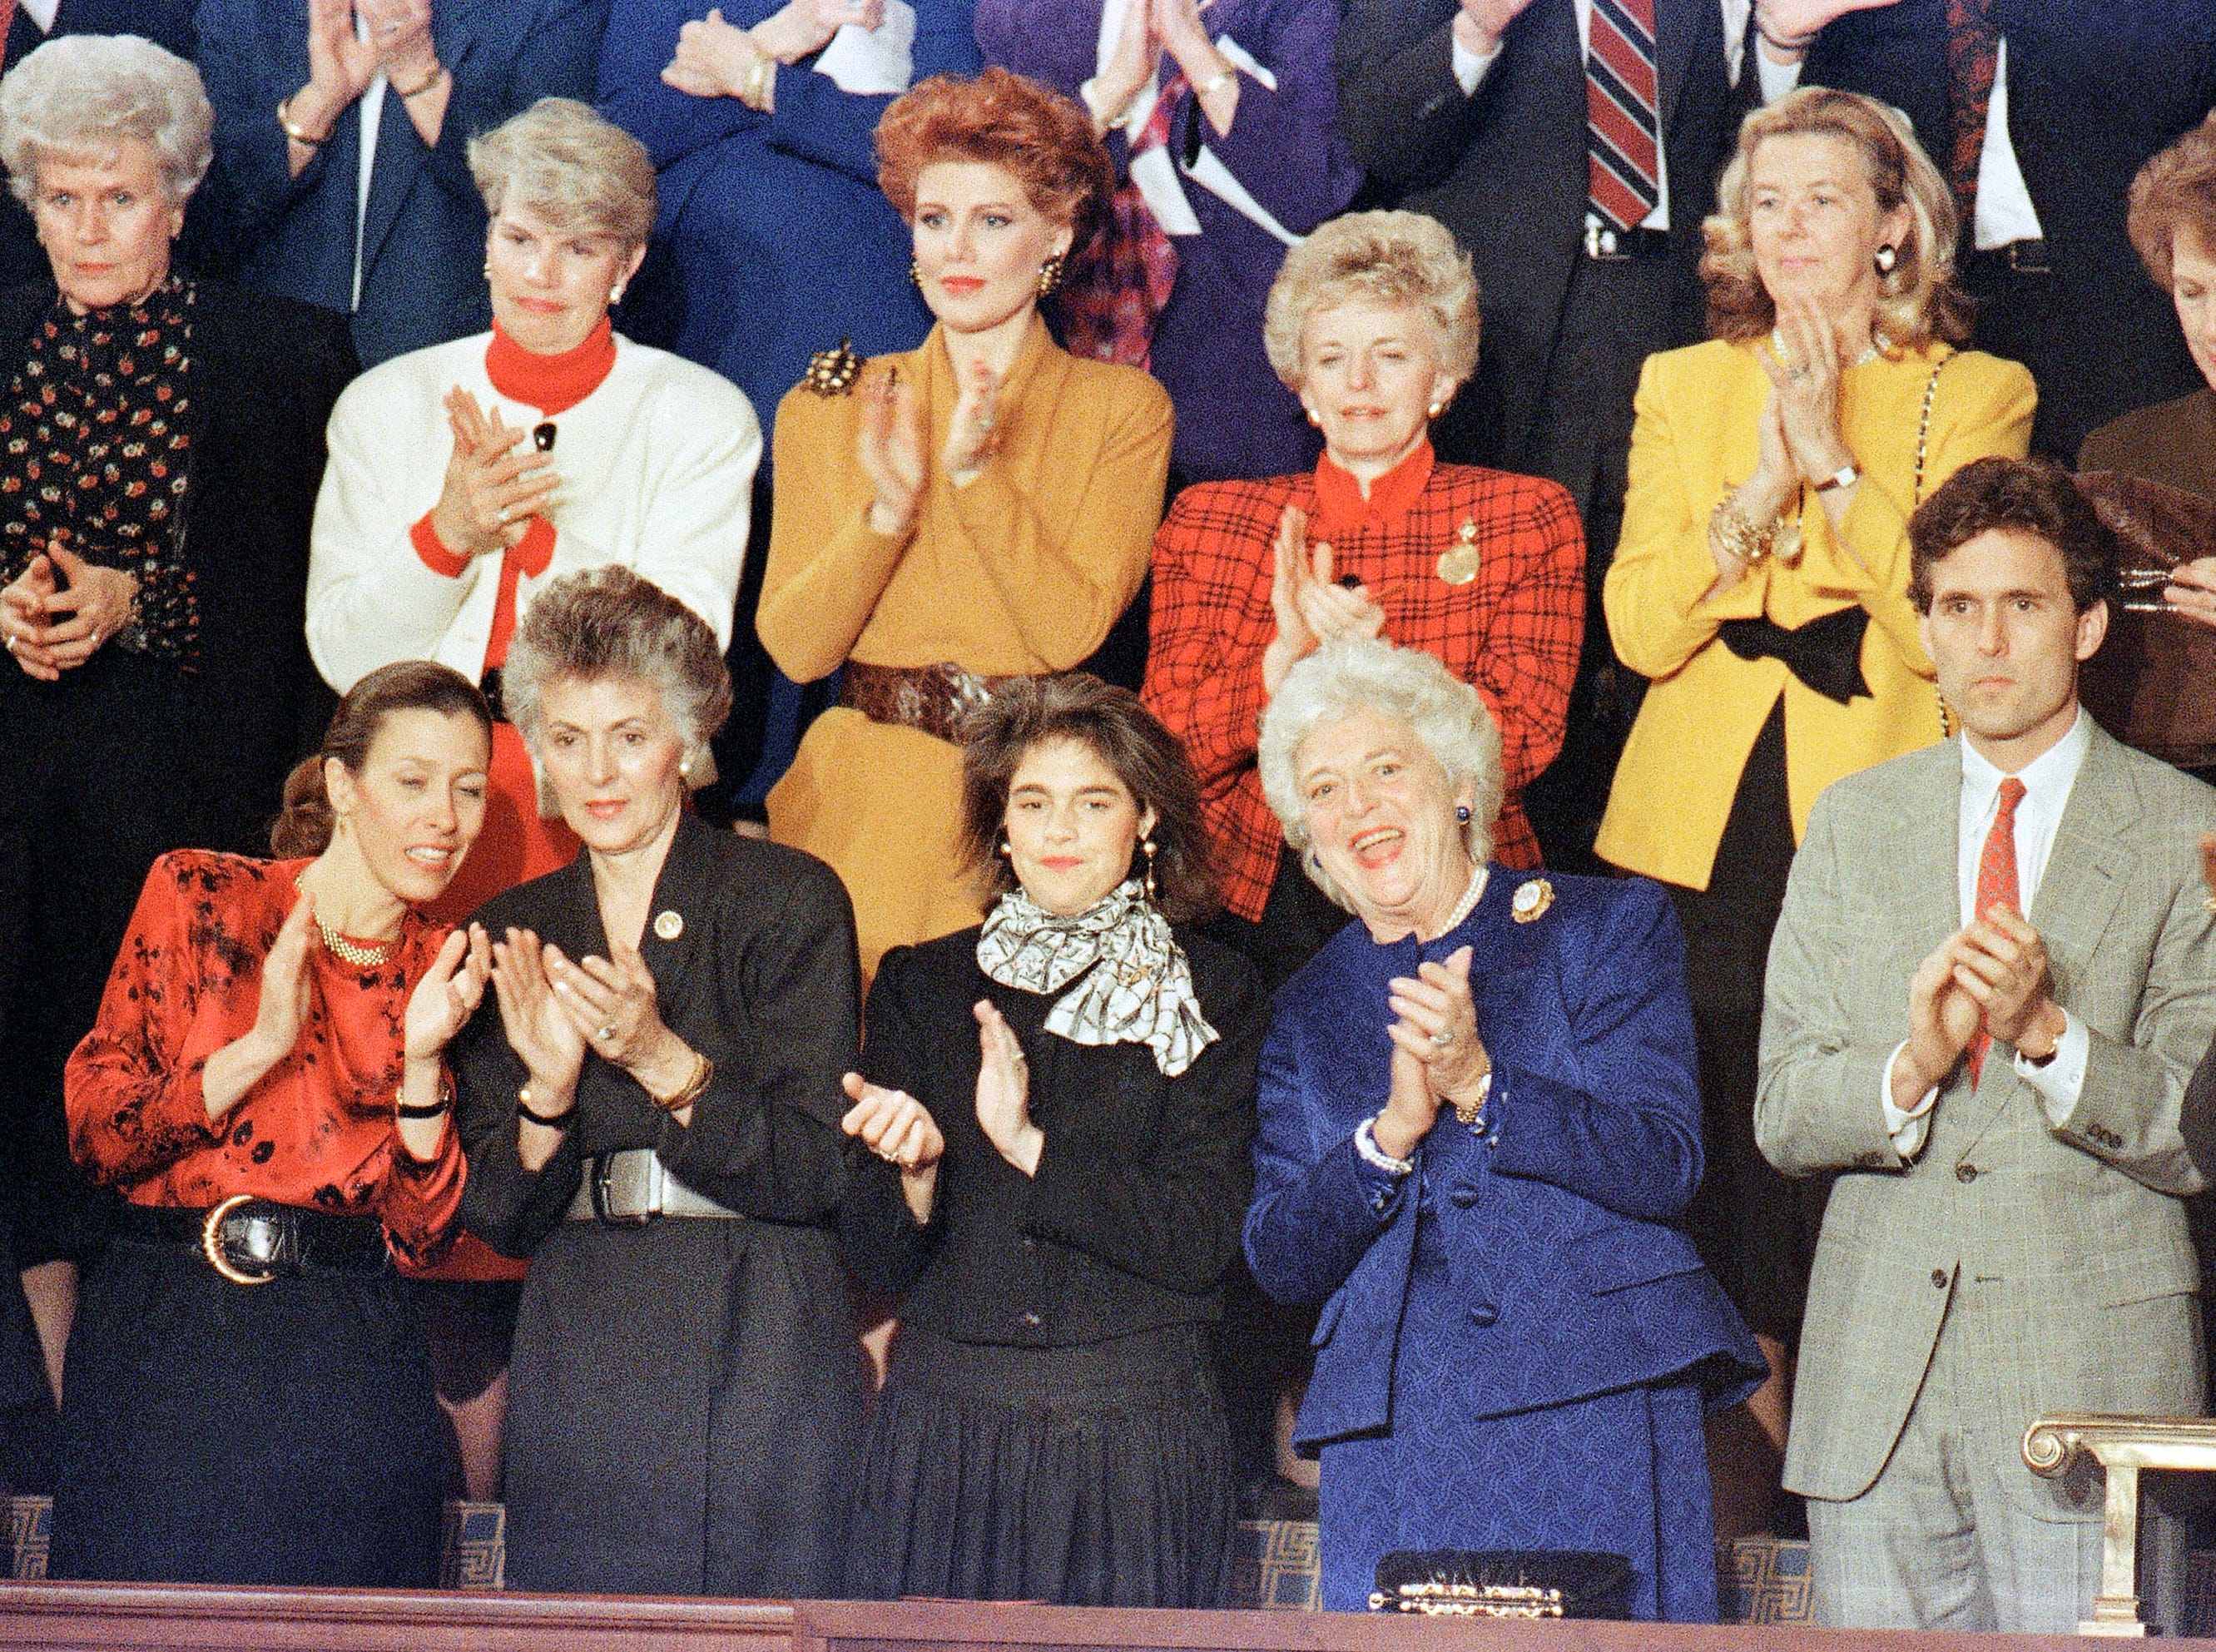 Mrs. Barbara Bush, center, is joined by Margaret and Marvin Bush as they applaud President George H.W. Bush's arrival to the House chamber in Washington on Jan. 31, 1990 where the president made his first State of the Union address. (AP Photo/Doug Mills)